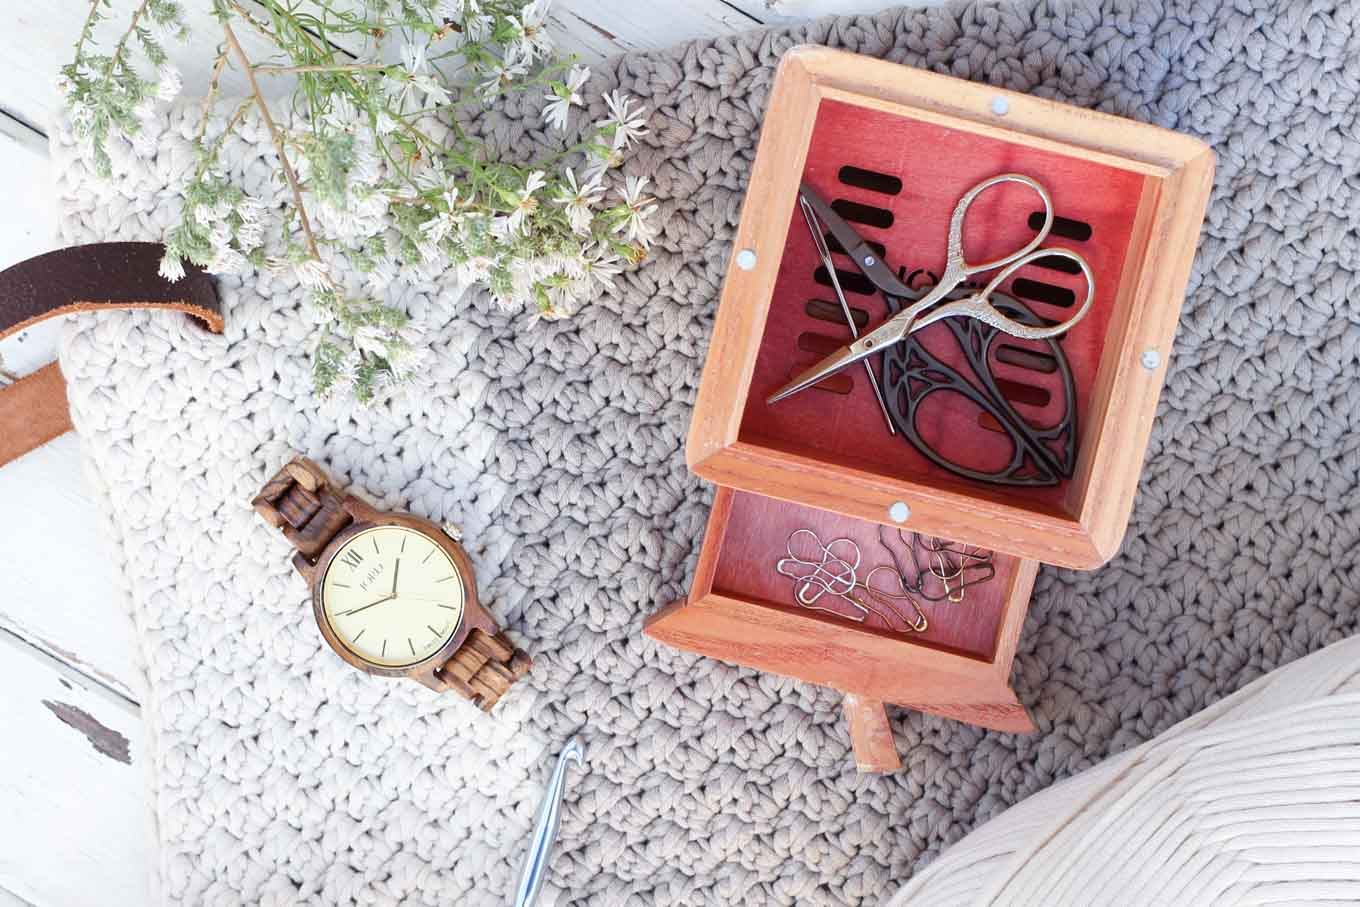 How to store your craft supplies using a wooden watch box from JORD Wood Watches. Crochet bag made with Bernat Maker Home Dec yarn.